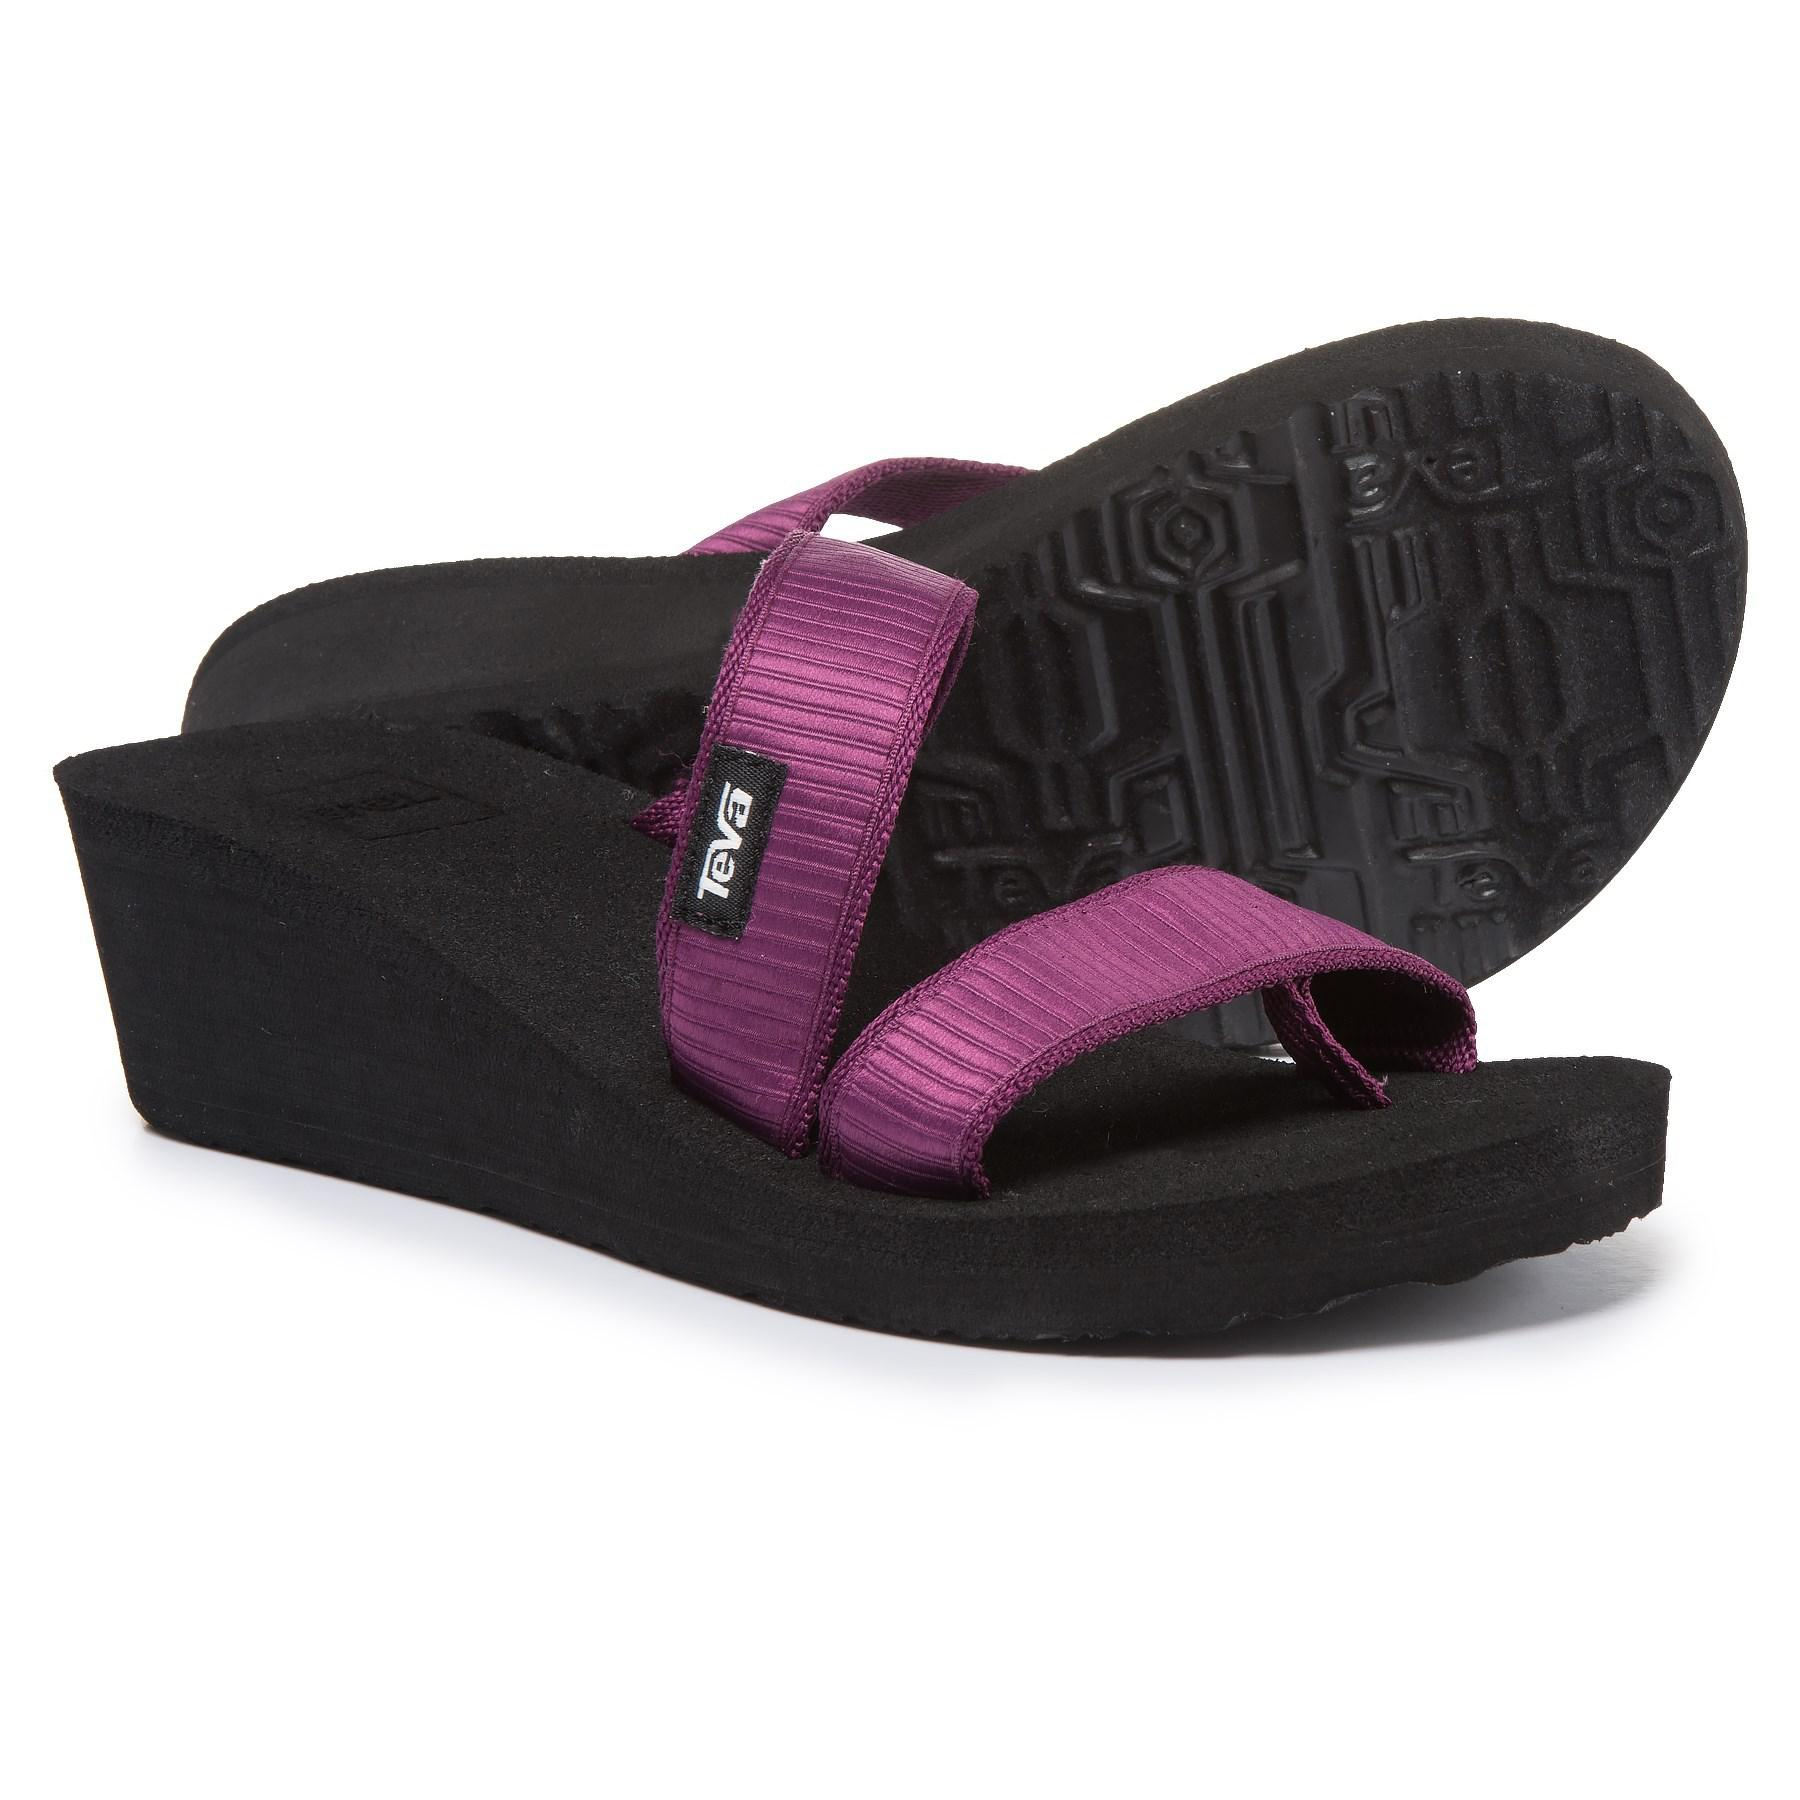 9e3f3430cbcd Teva - Purple Mush® Mandalyn Wedge Loma Sandals (for Women) - Lyst. View  fullscreen